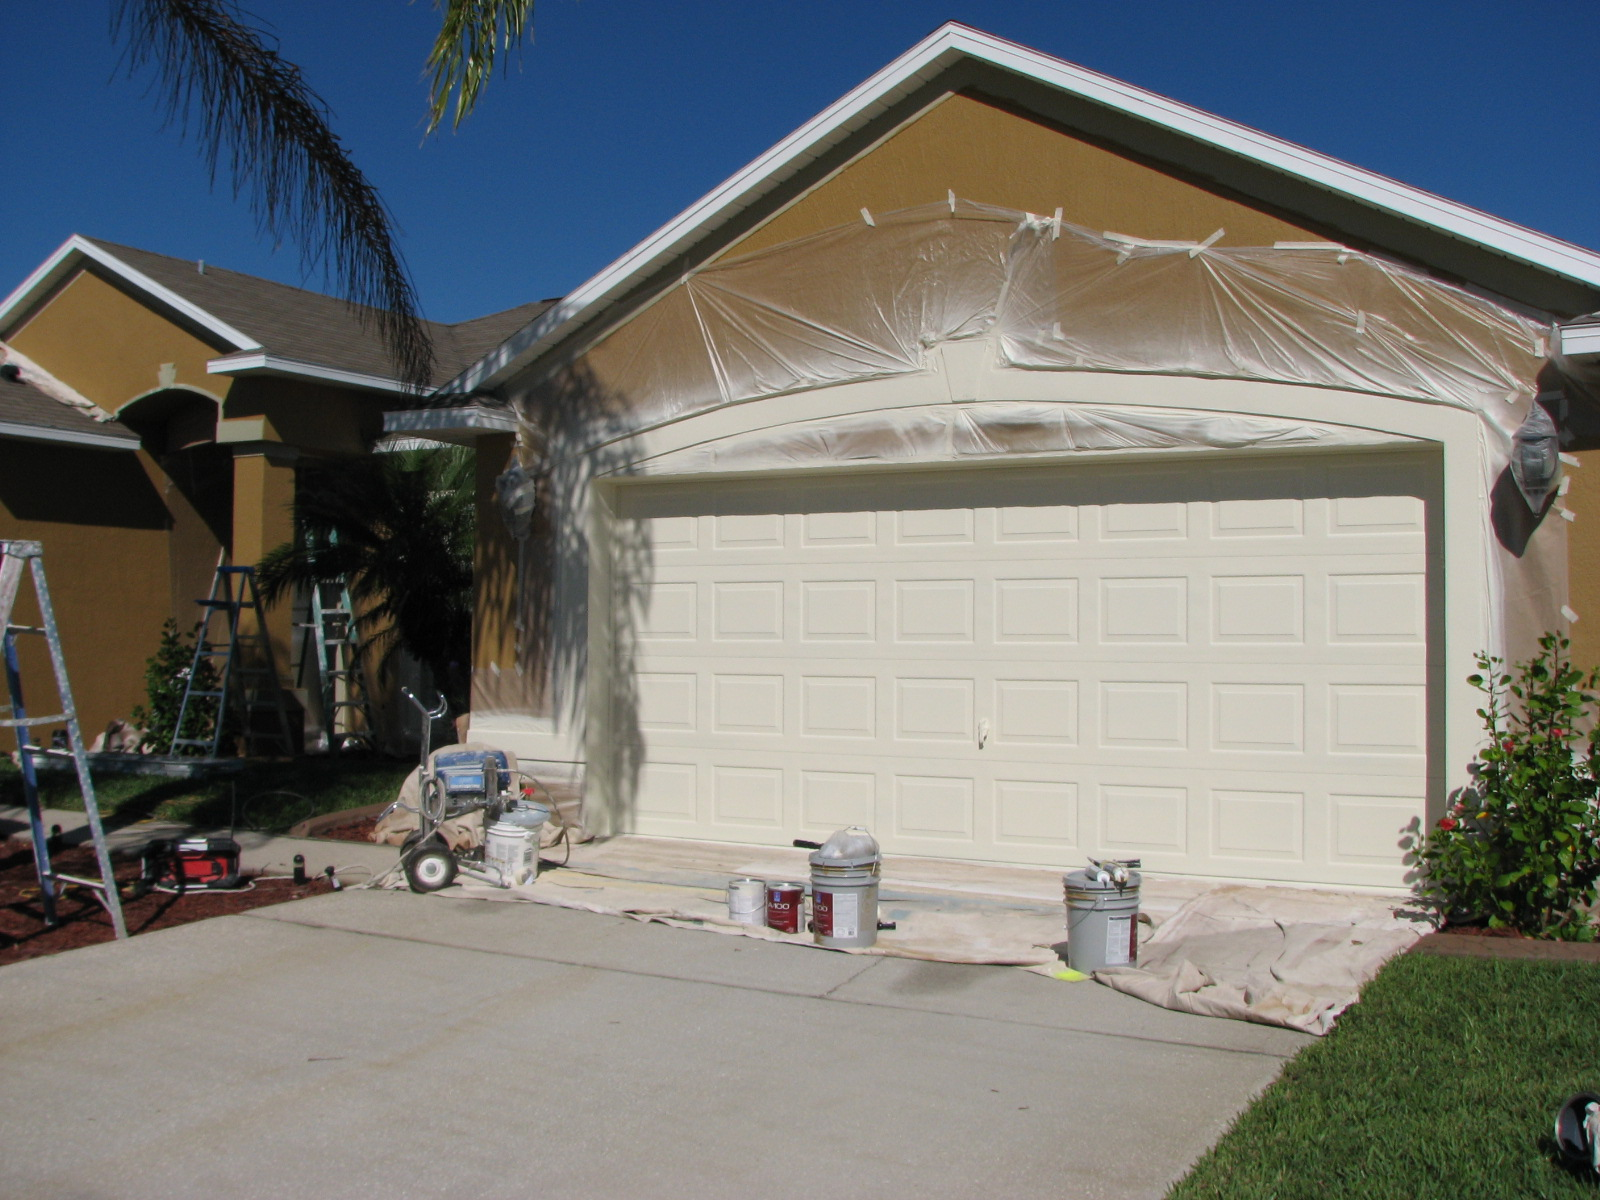 Project blog drywall painting repair melbourne beach fl melbourne garage door spray painted solutioingenieria Gallery